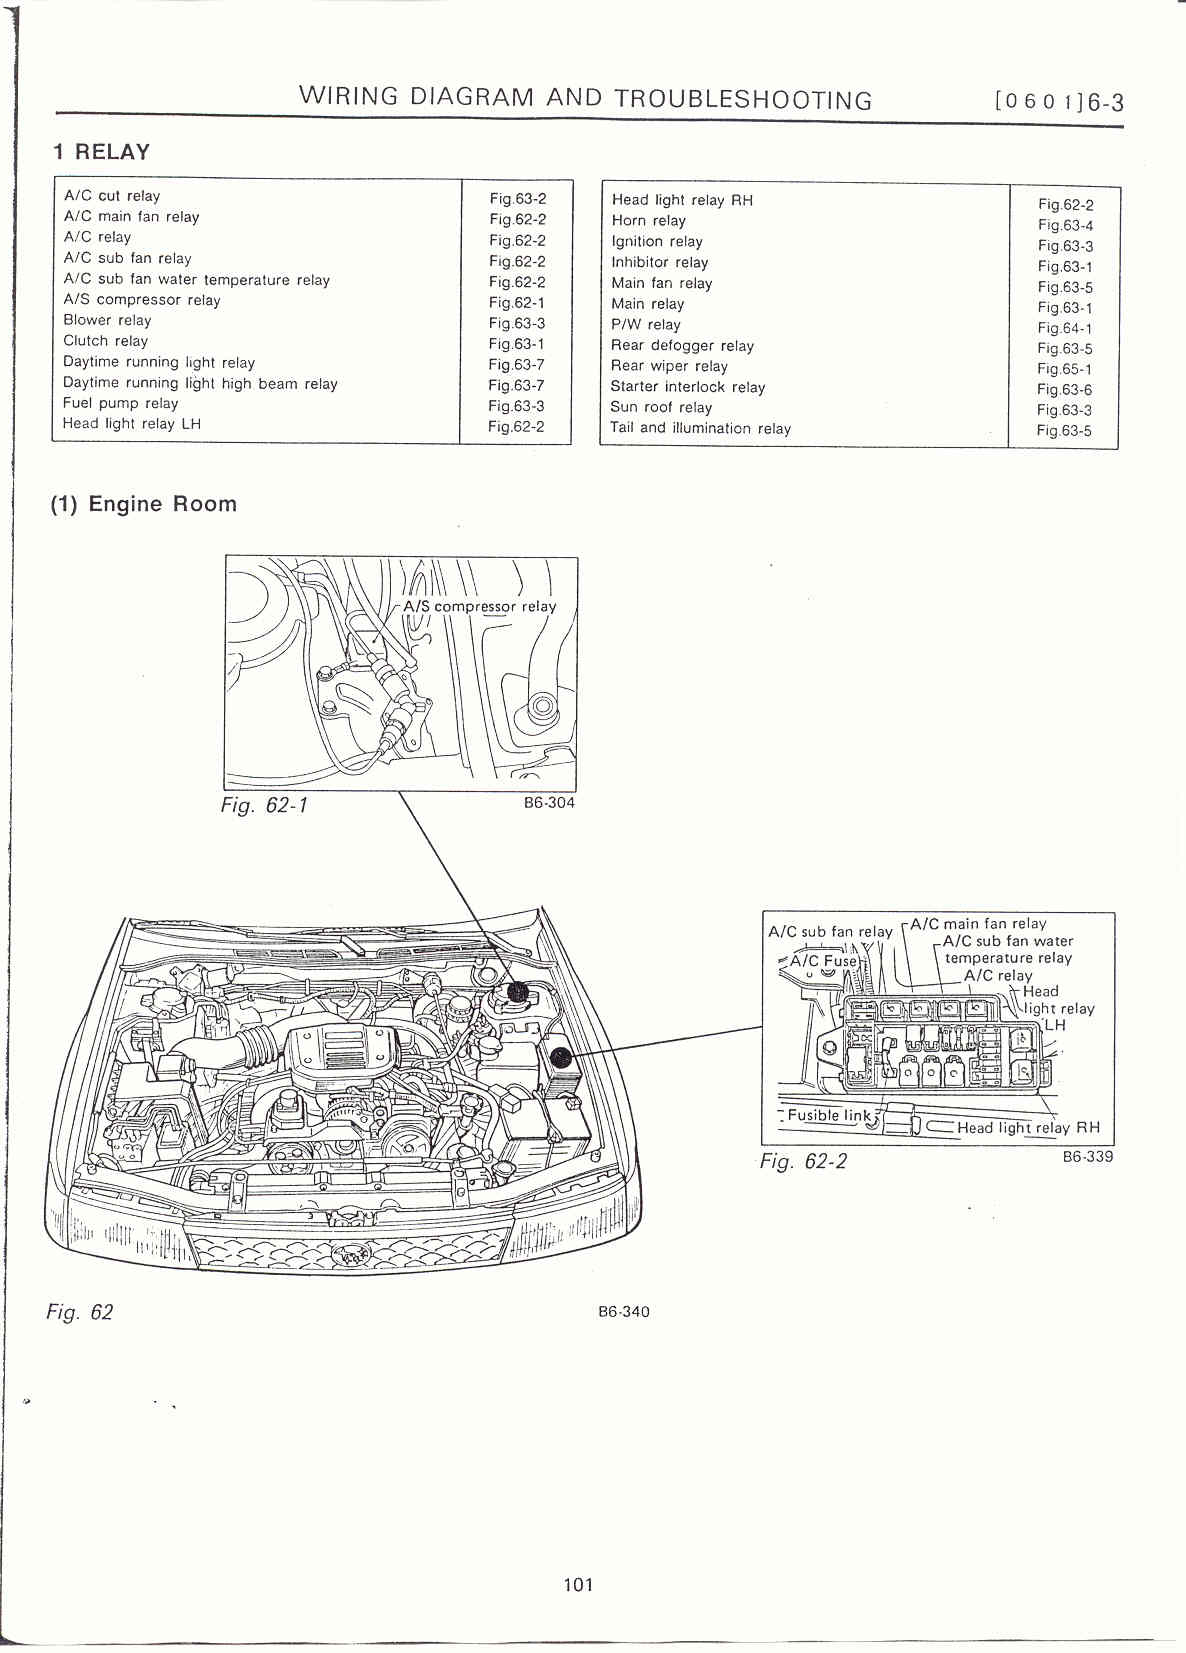 1981 Dodge Ram Wiring Diagram Great Design Of 1994 2500 1997 Subaru Fuse Box U2022 For Free 2012 2006